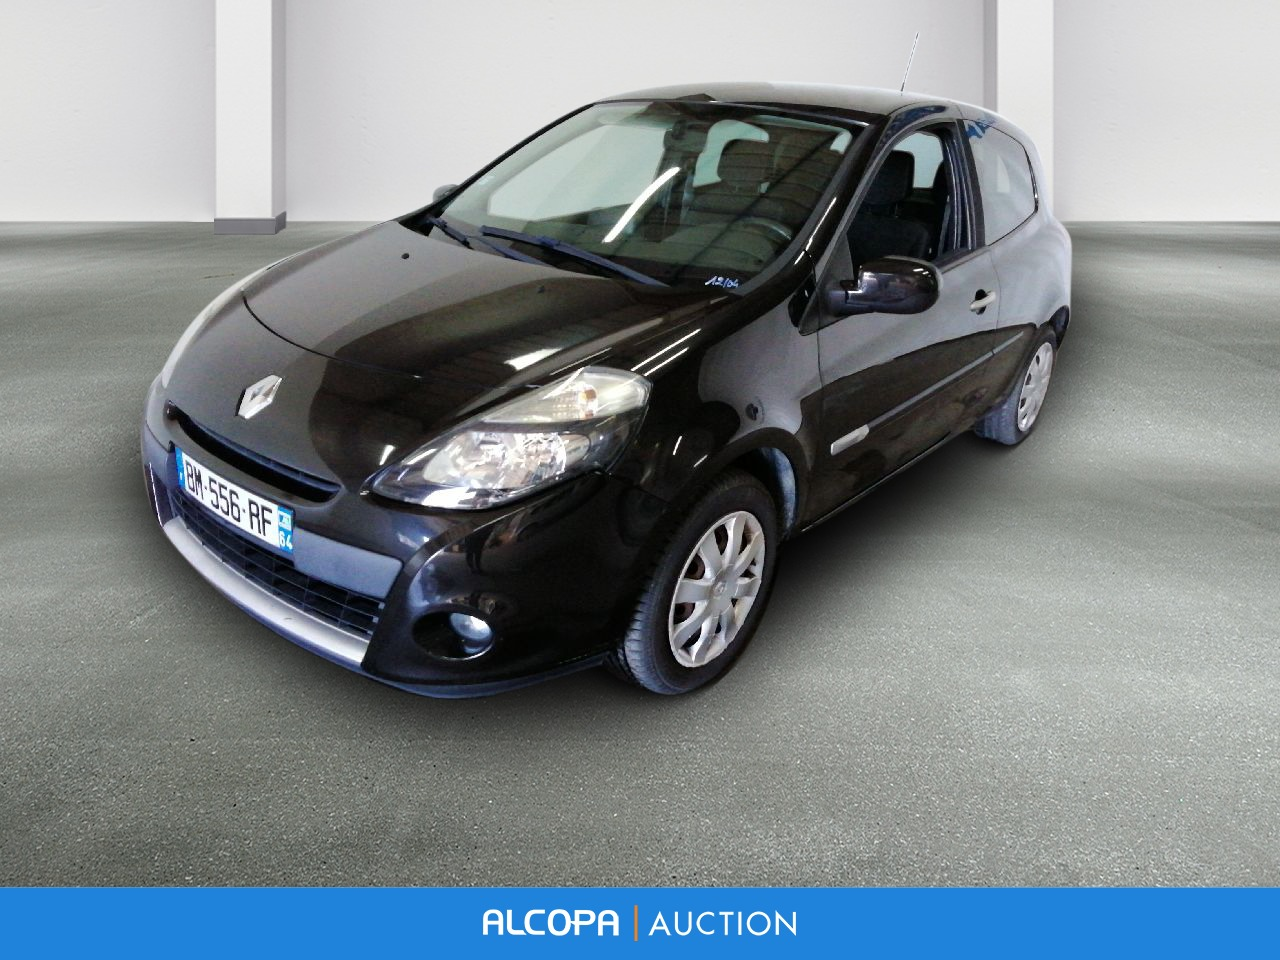 renault clio iii clio iii dci 75 eco2 dynamique tomtom euro 5 tours alcopa auction. Black Bedroom Furniture Sets. Home Design Ideas